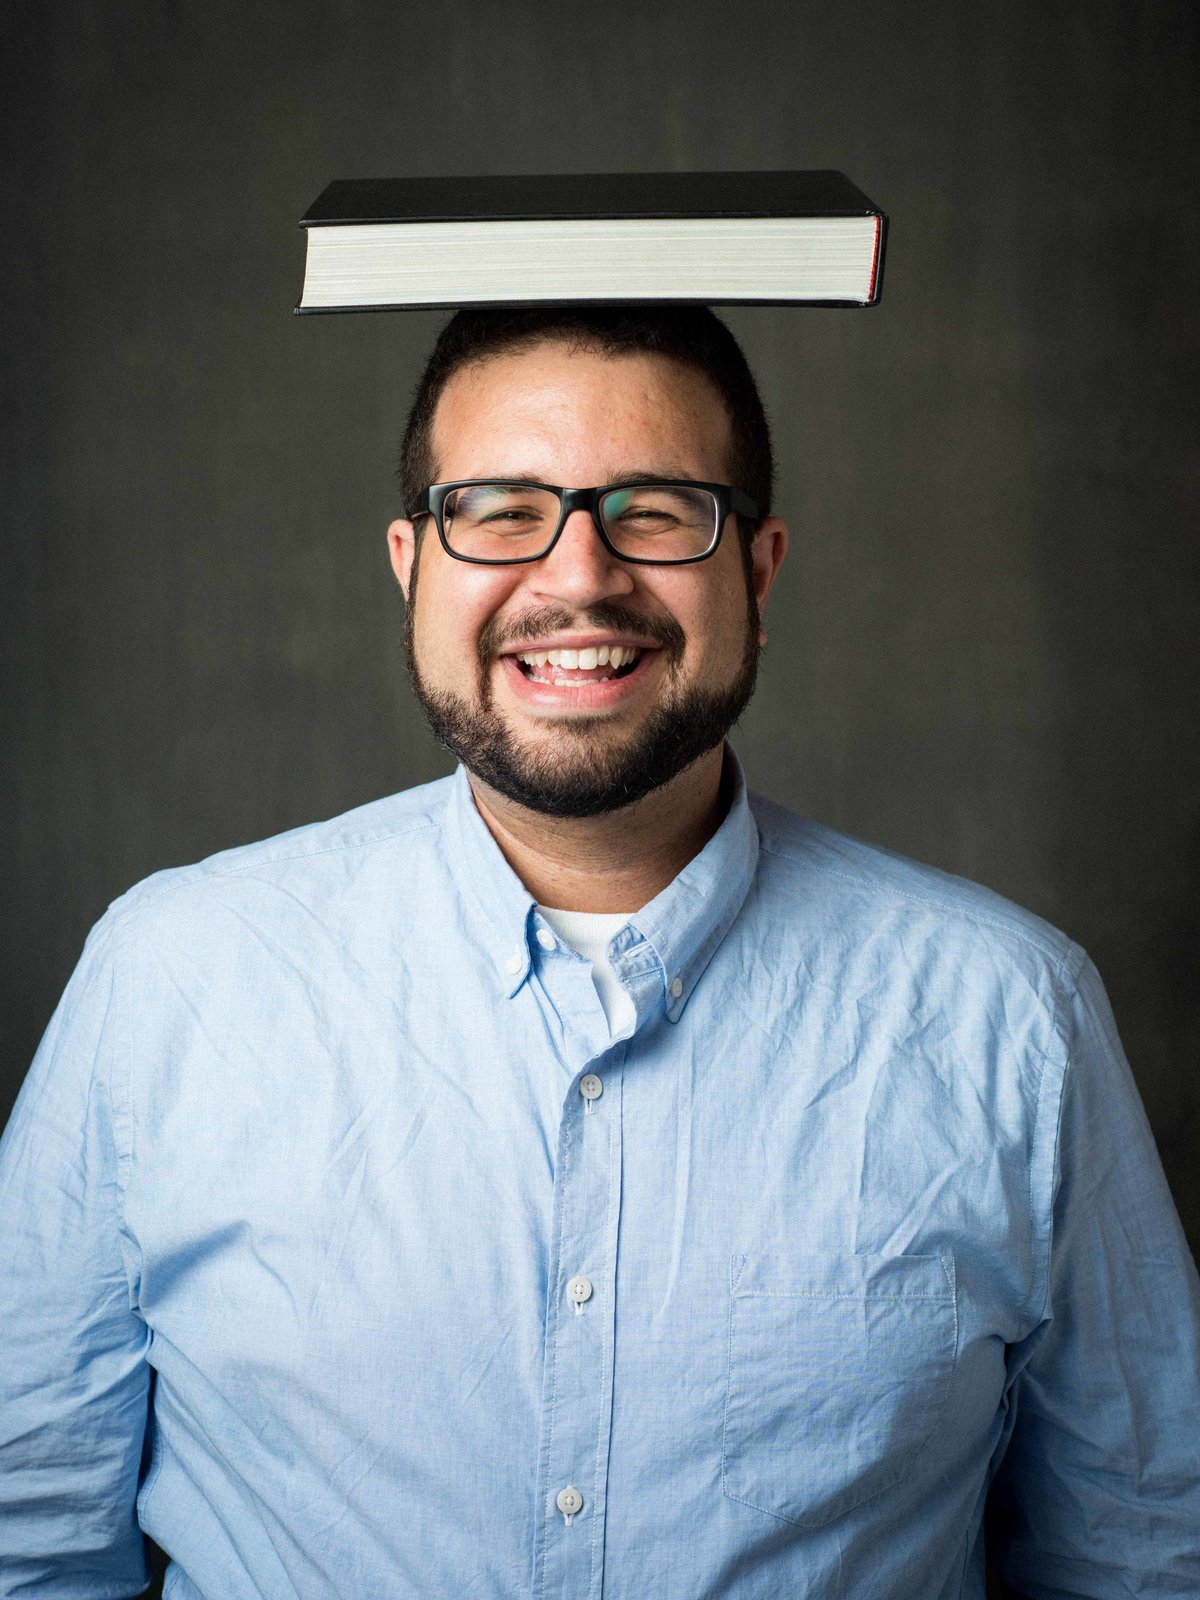 Studio portrait, man smiling with book on head. Chicago.